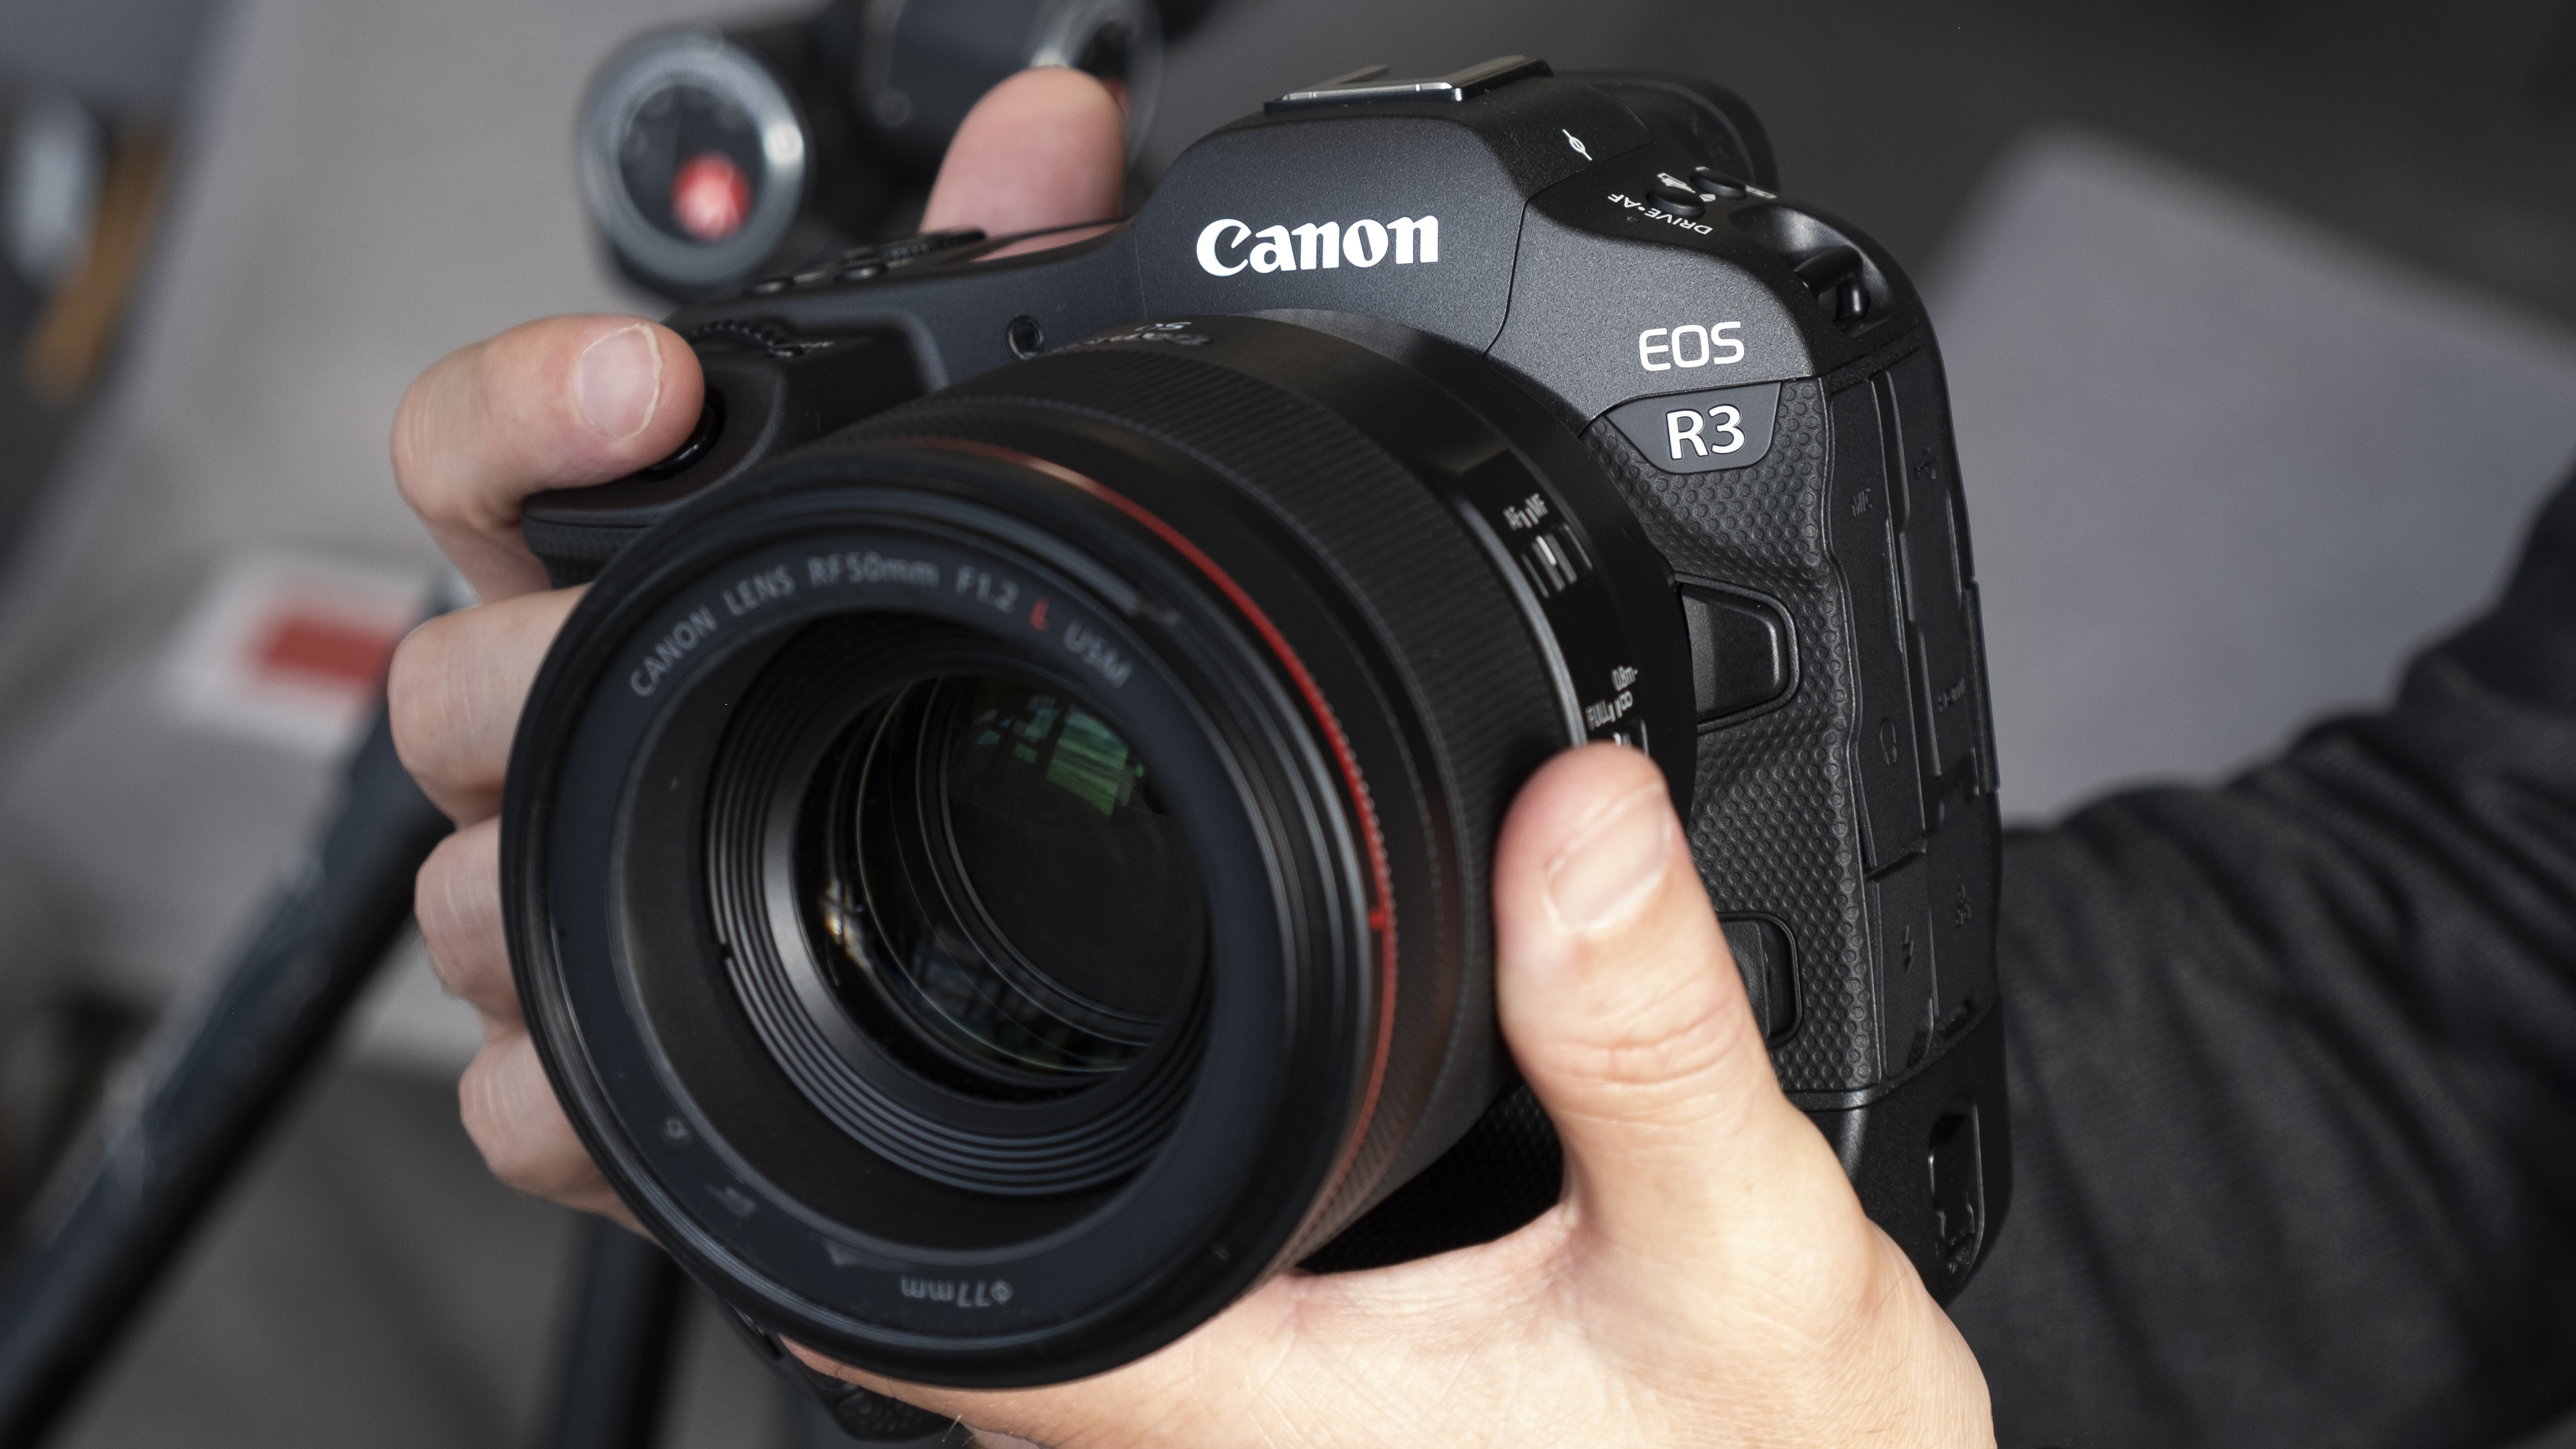 Two hands holding the Canon EOS R3 mirrorless camera